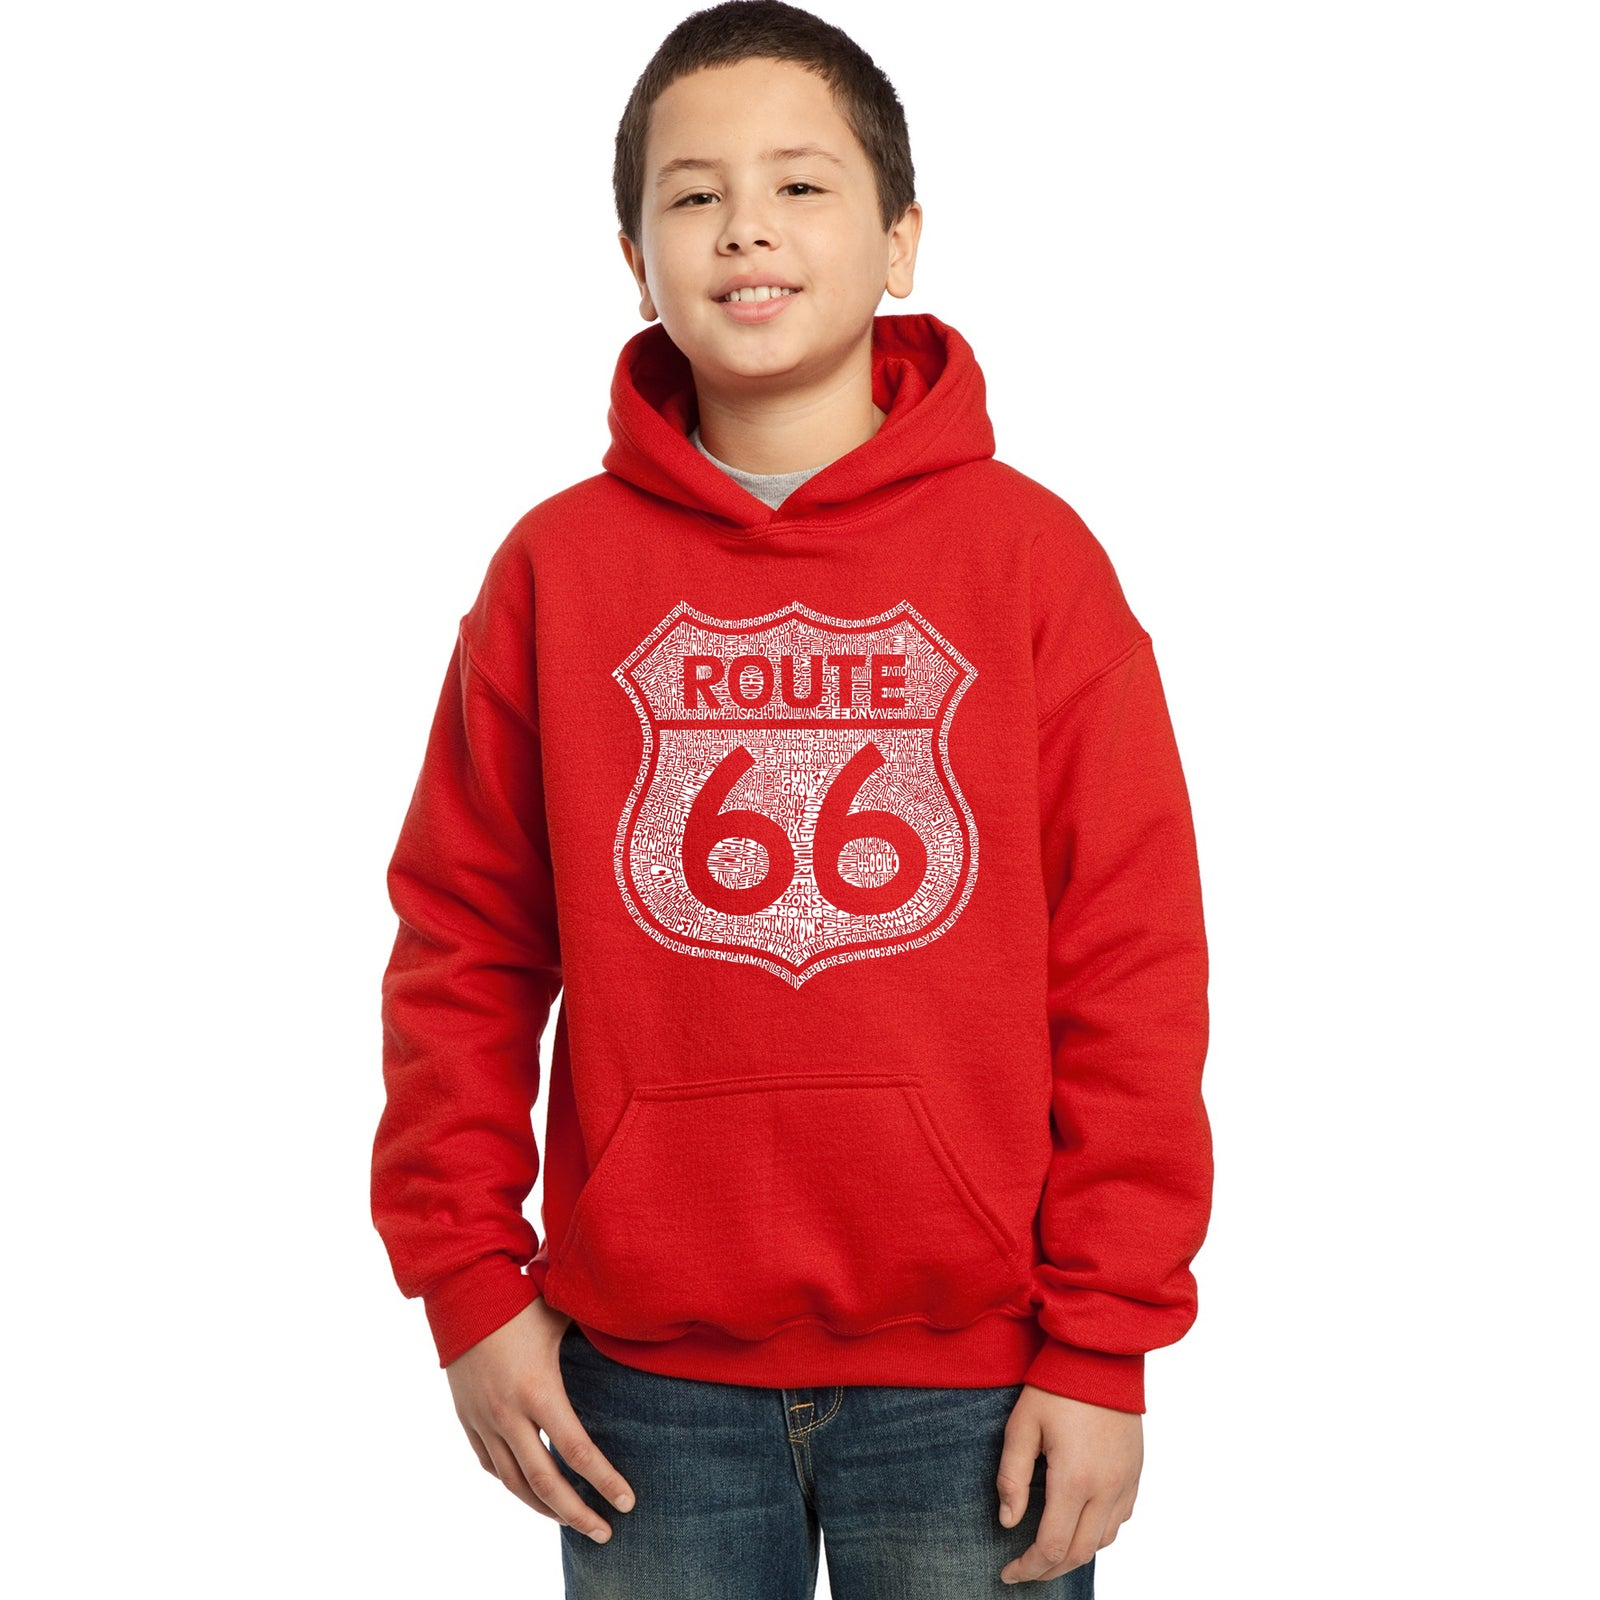 Boy's Hooded Sweatshirt - CITIES ALONG THE LEGENDARY ROUTE 66